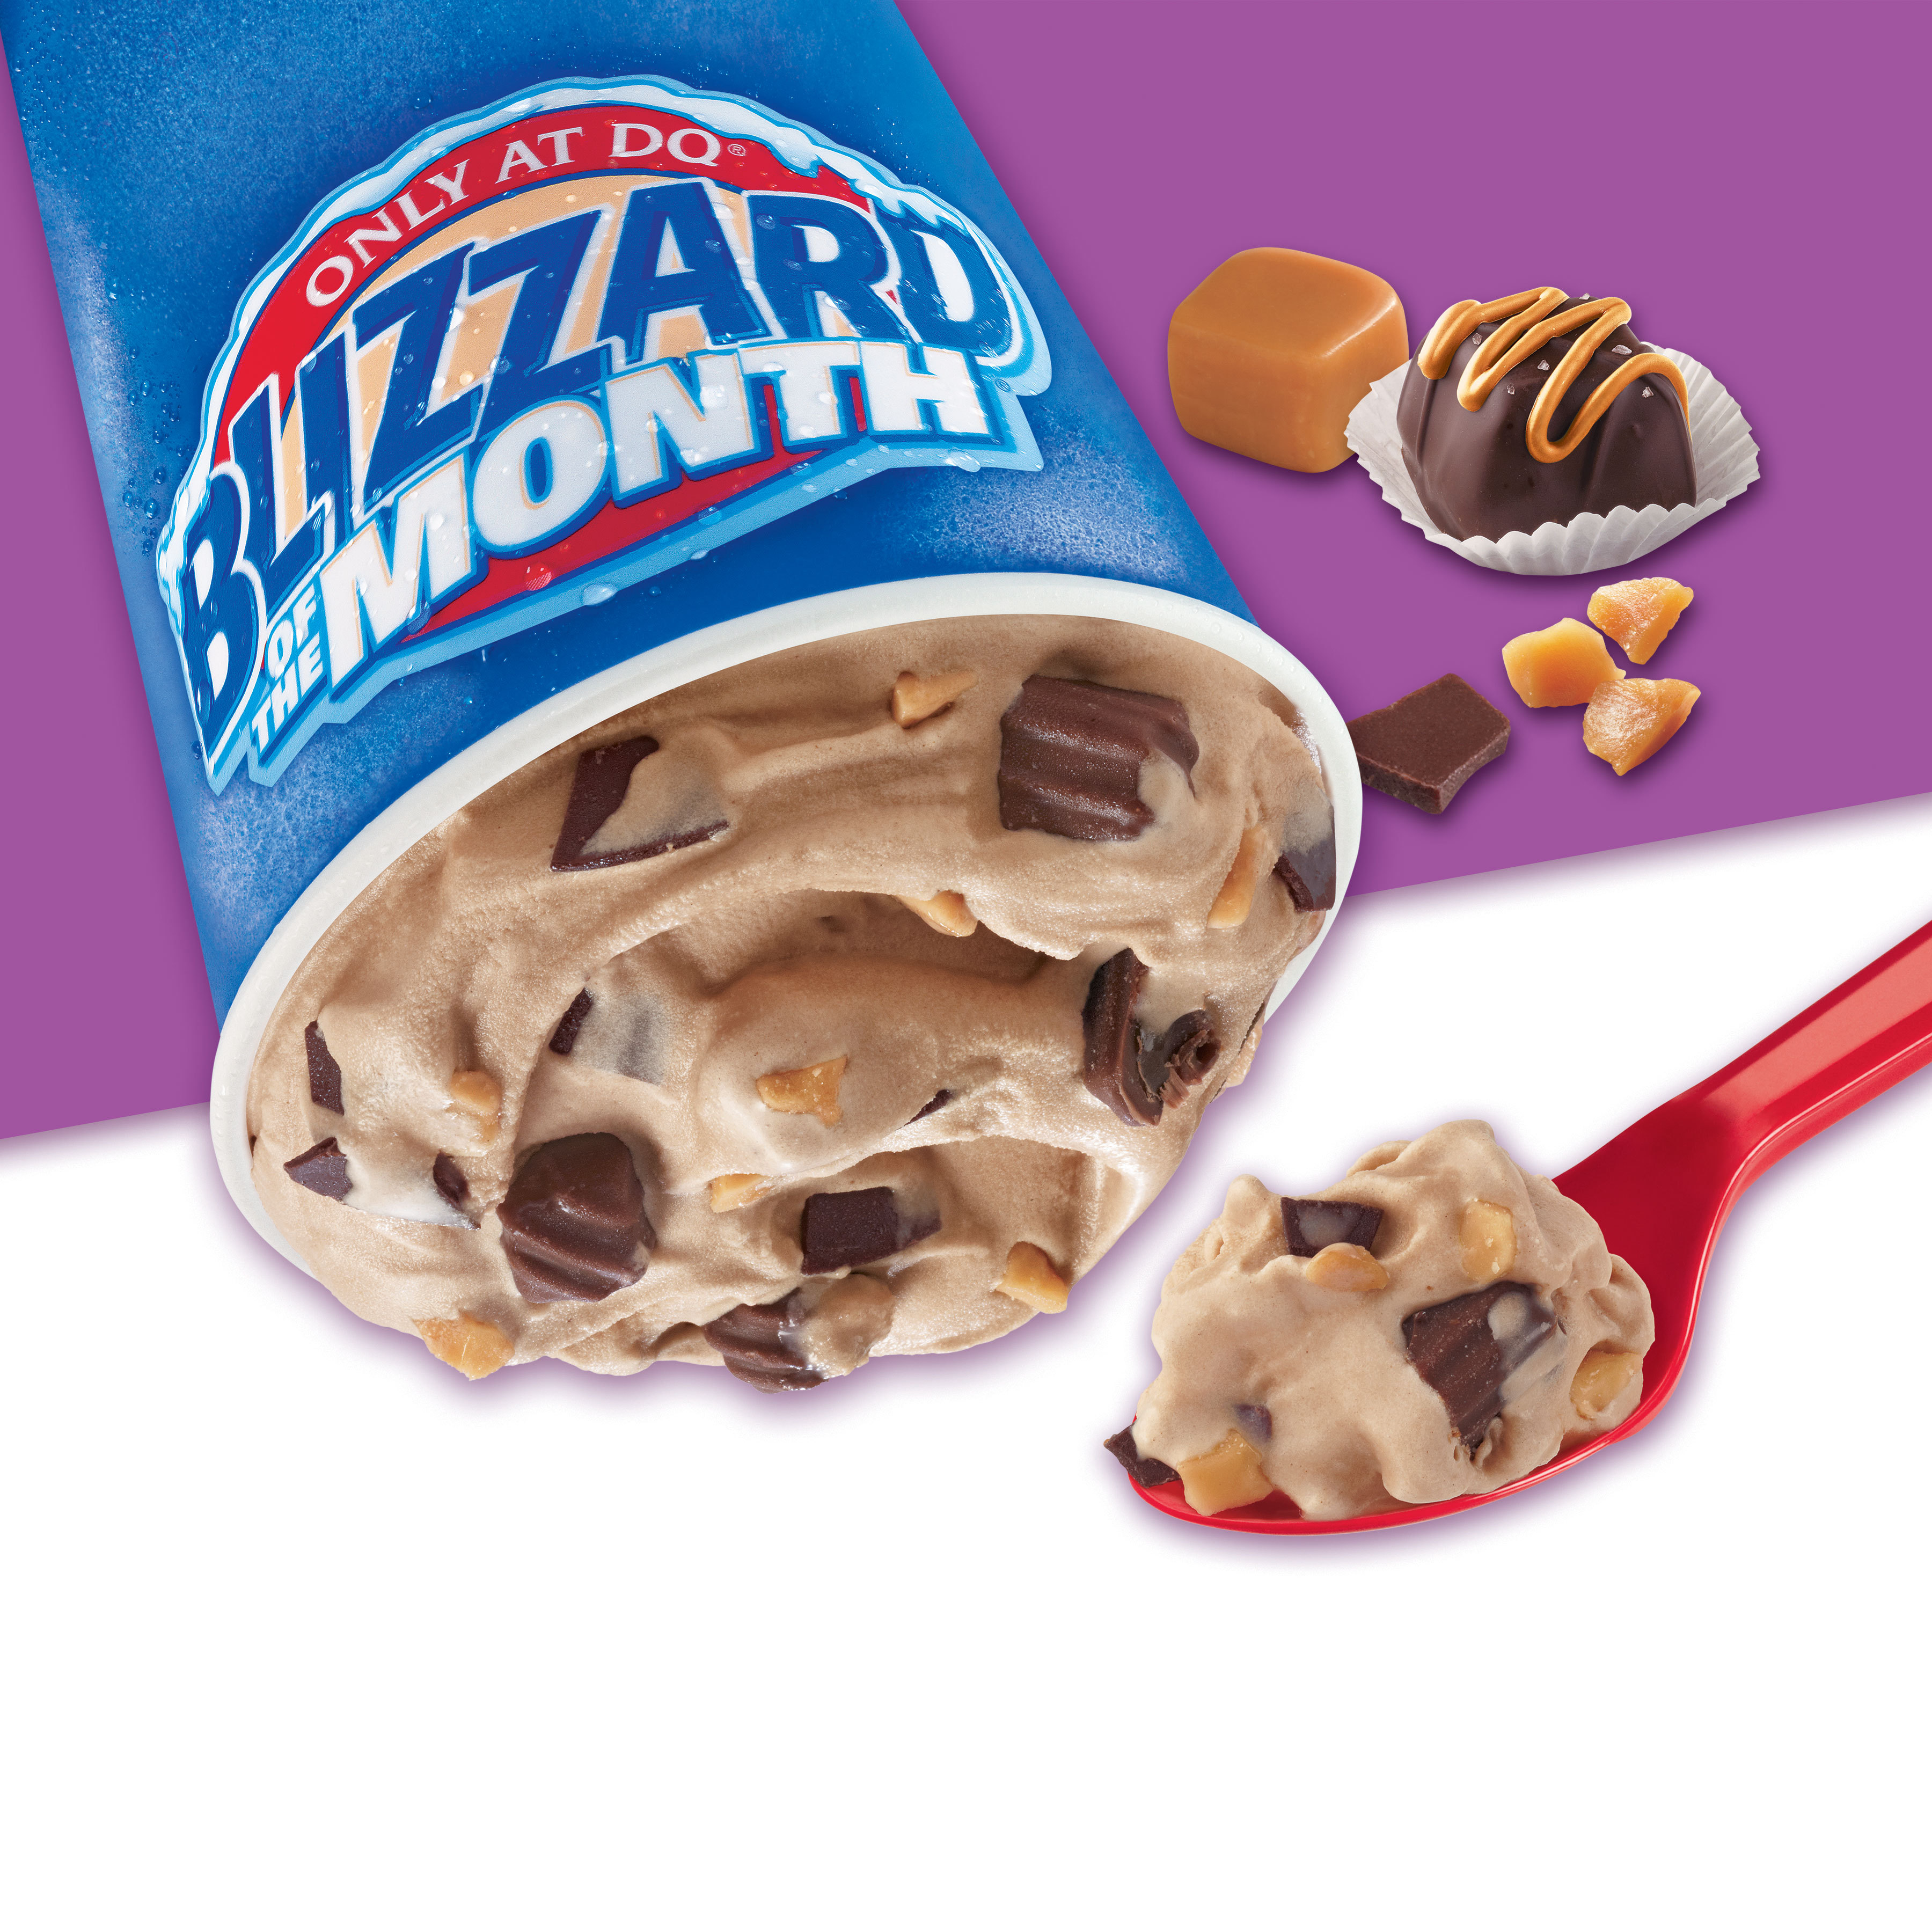 dairy queen blizzard upside down